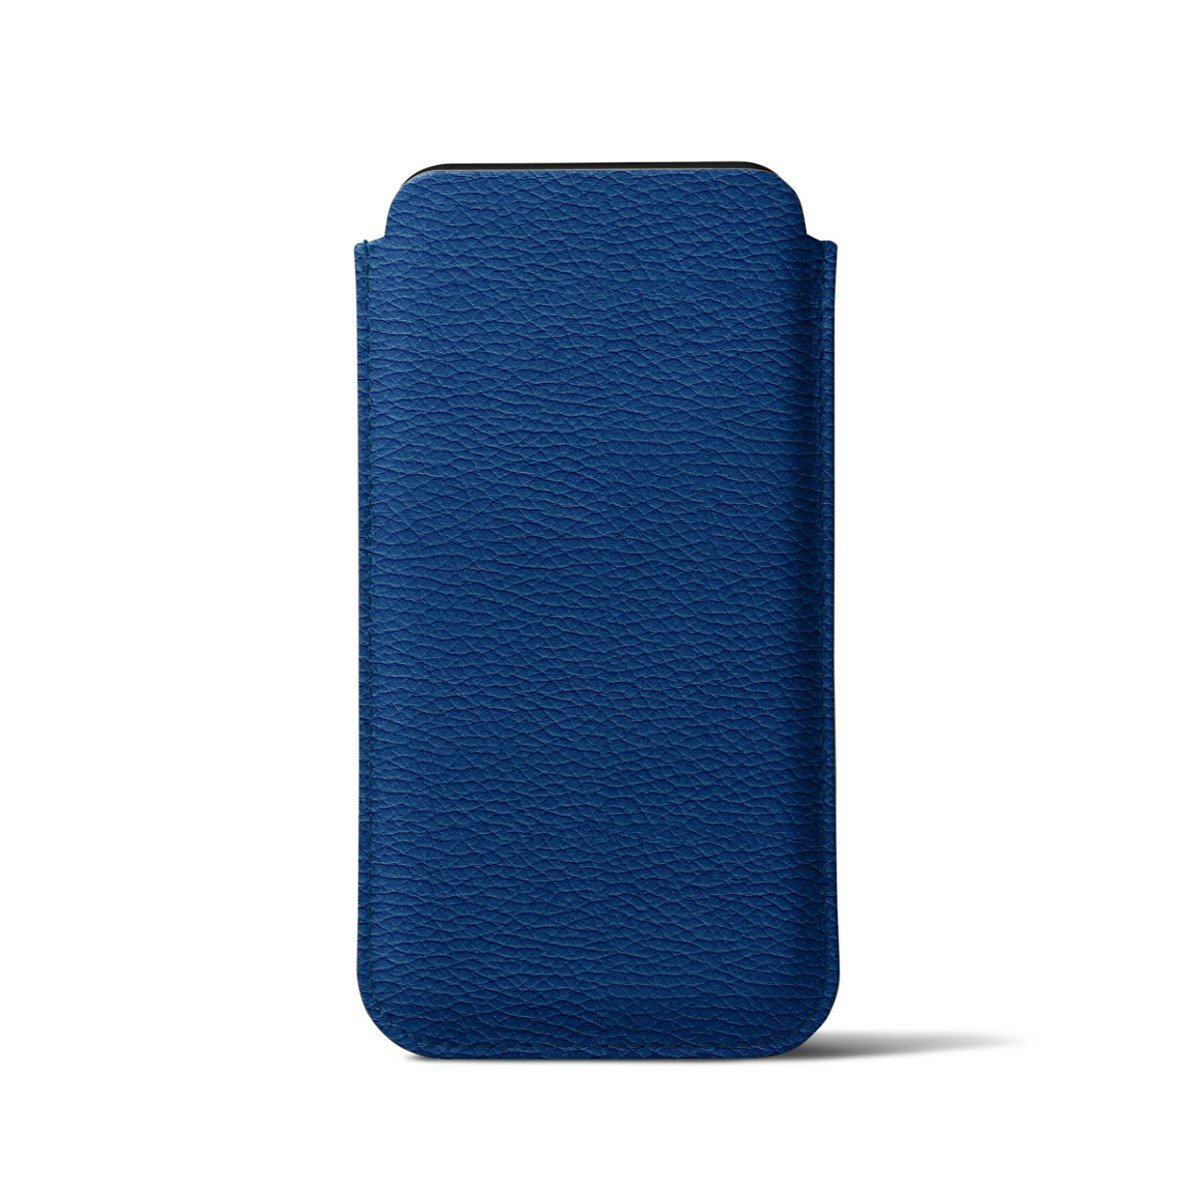 Lucrin - Classic Case for iPhone X - Royal Blue - Granulated Leather by Lucrin (Image #6)